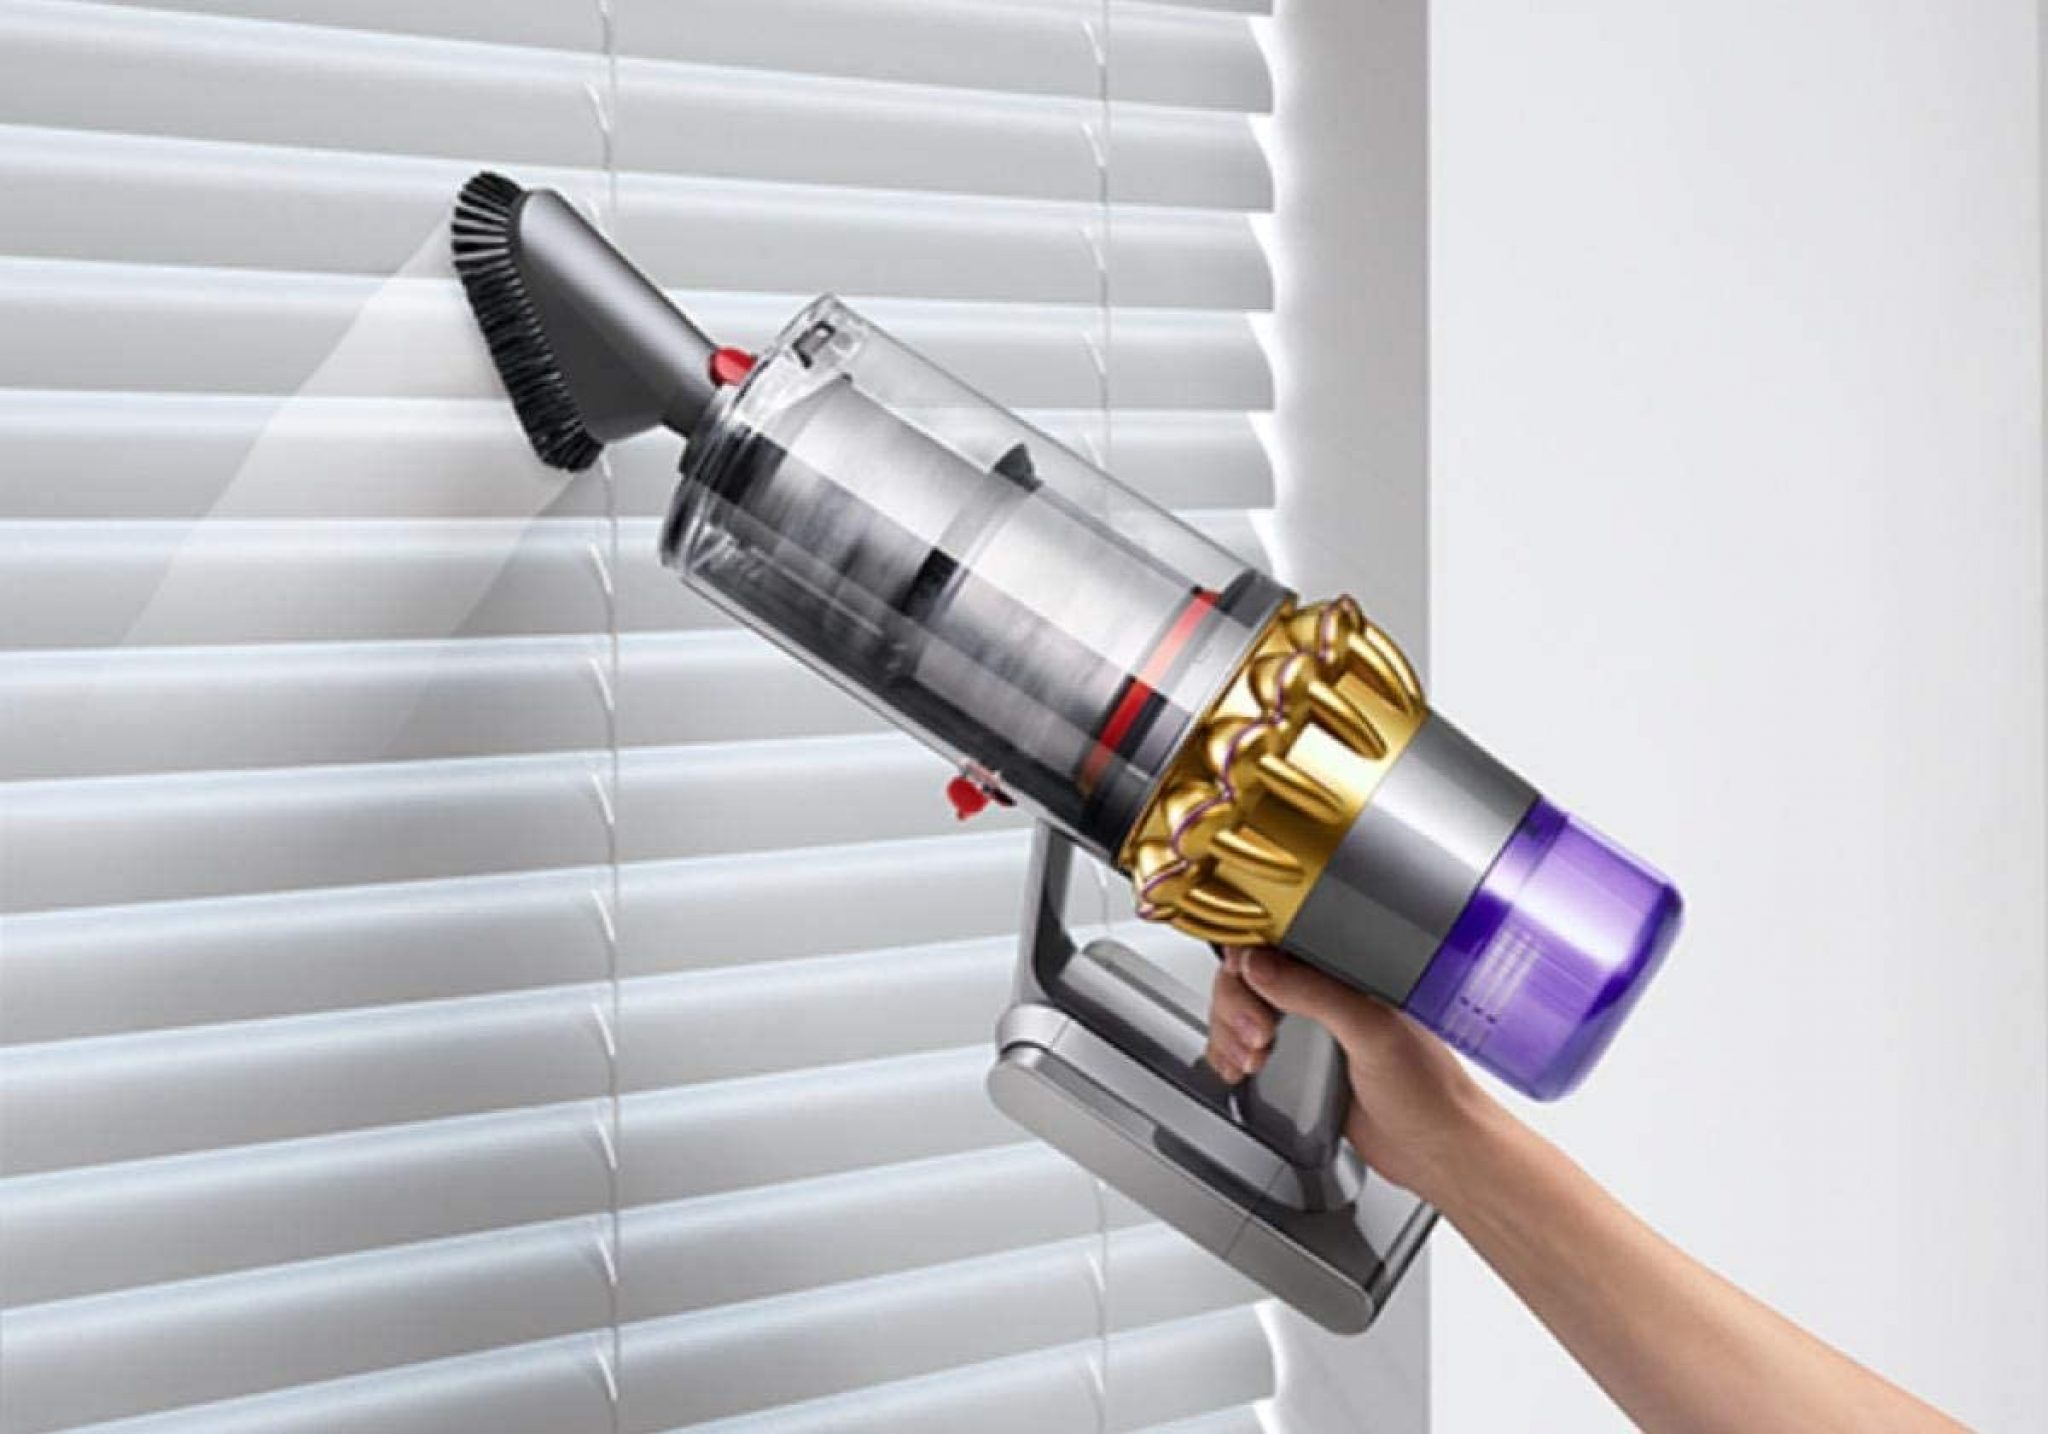 dyson confiscated by tsa